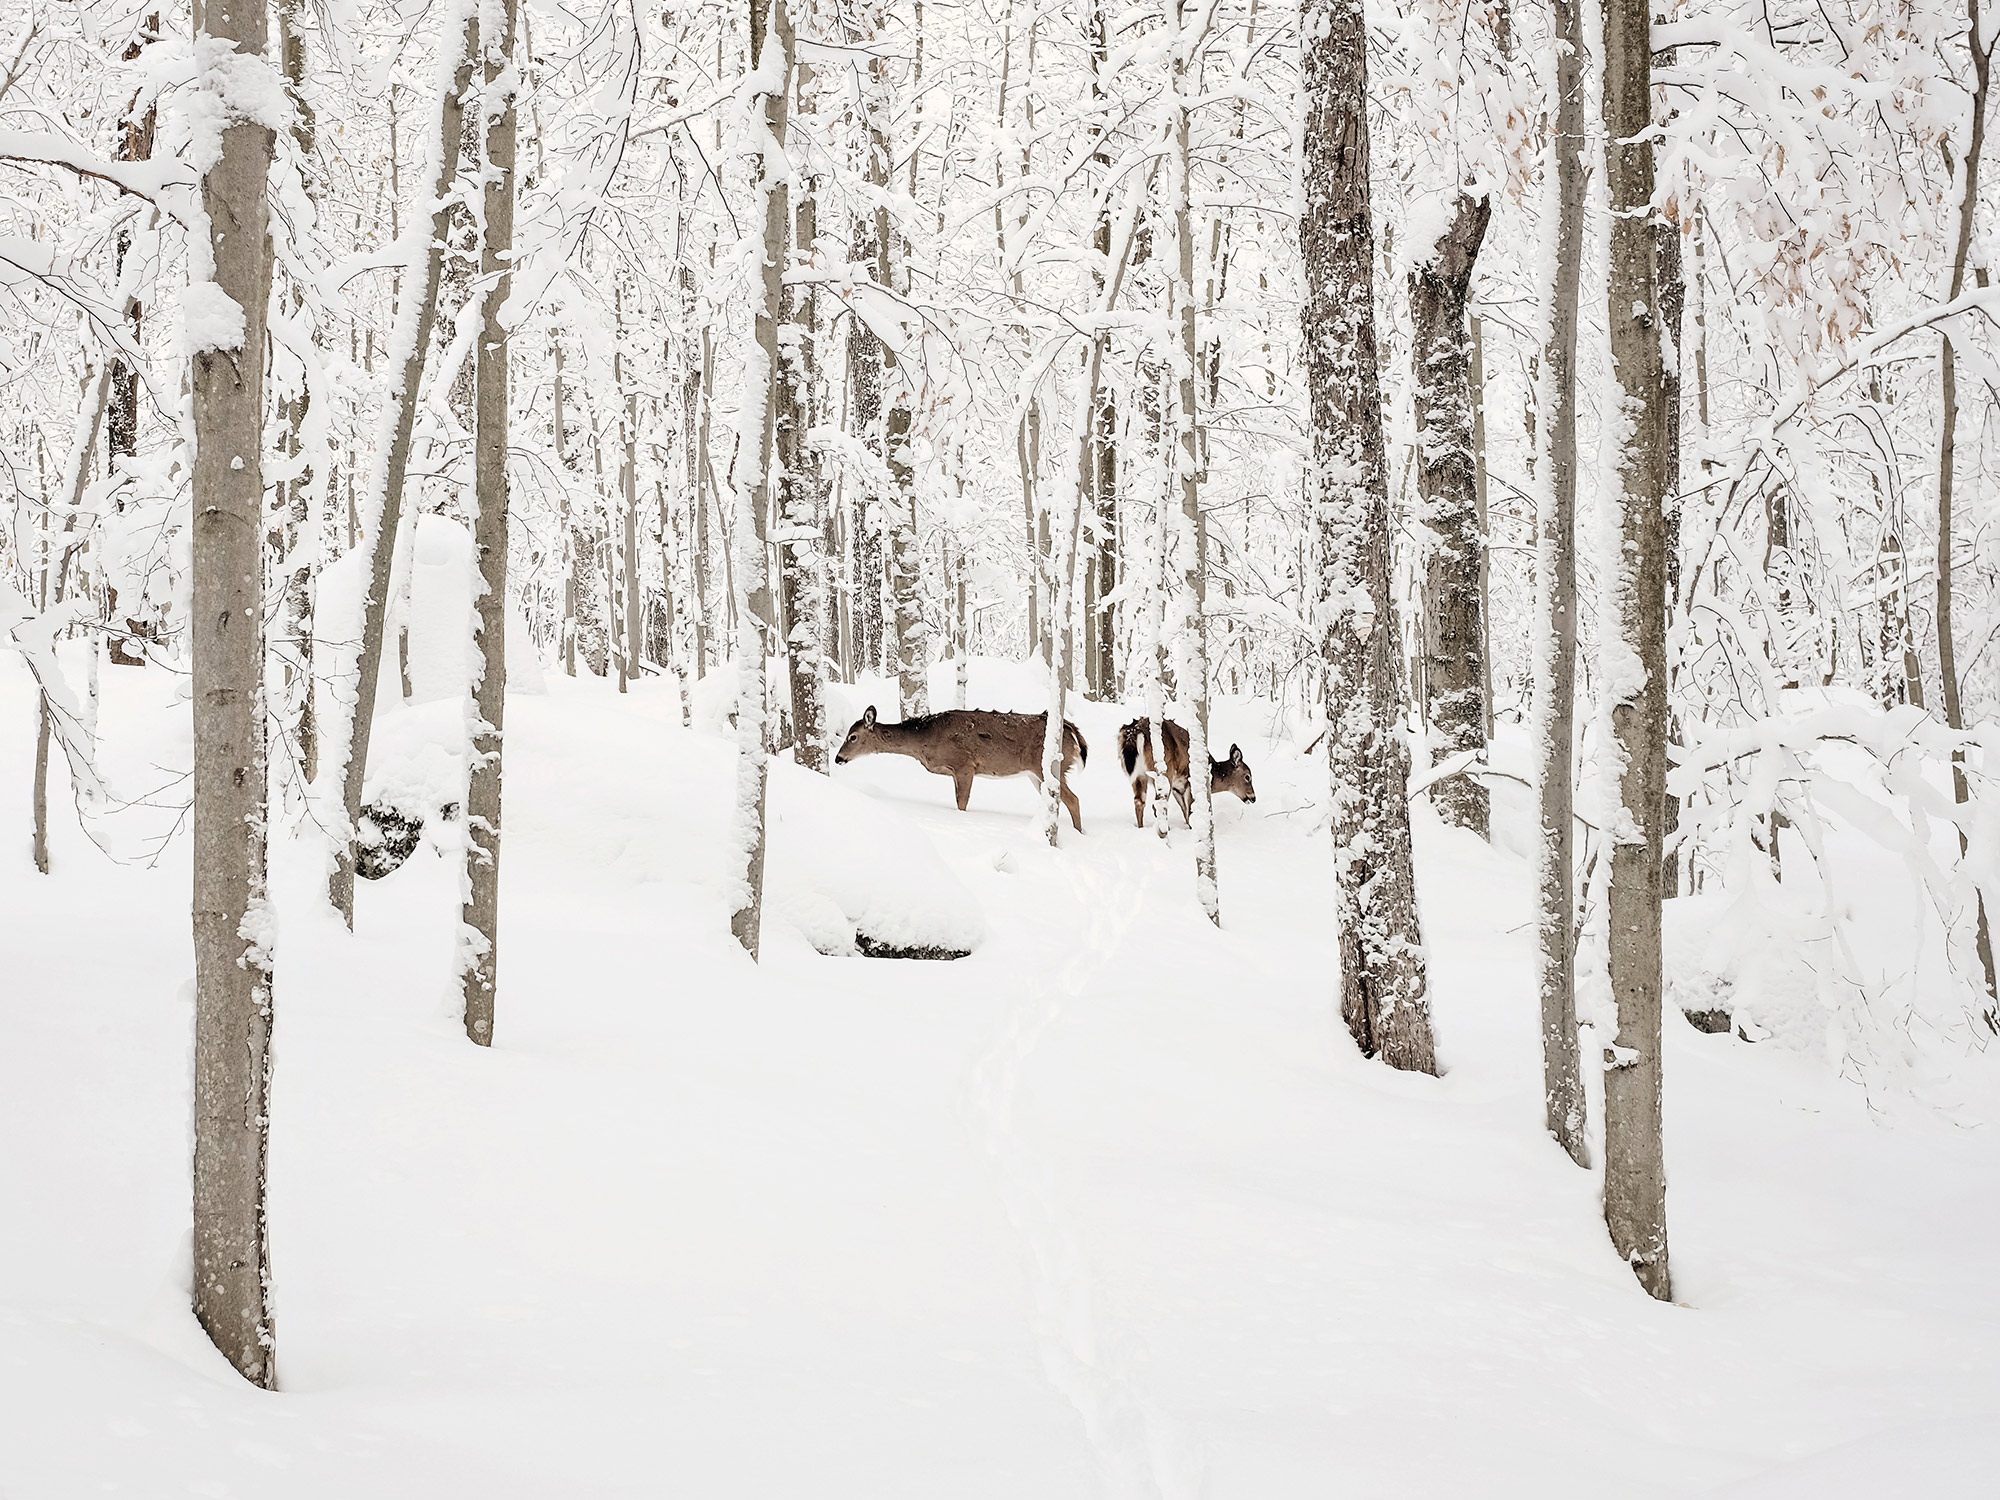 A family of deer look for food during a blizzard in Old Forge, New York, photographed by travel photographer, Todd Spoth.